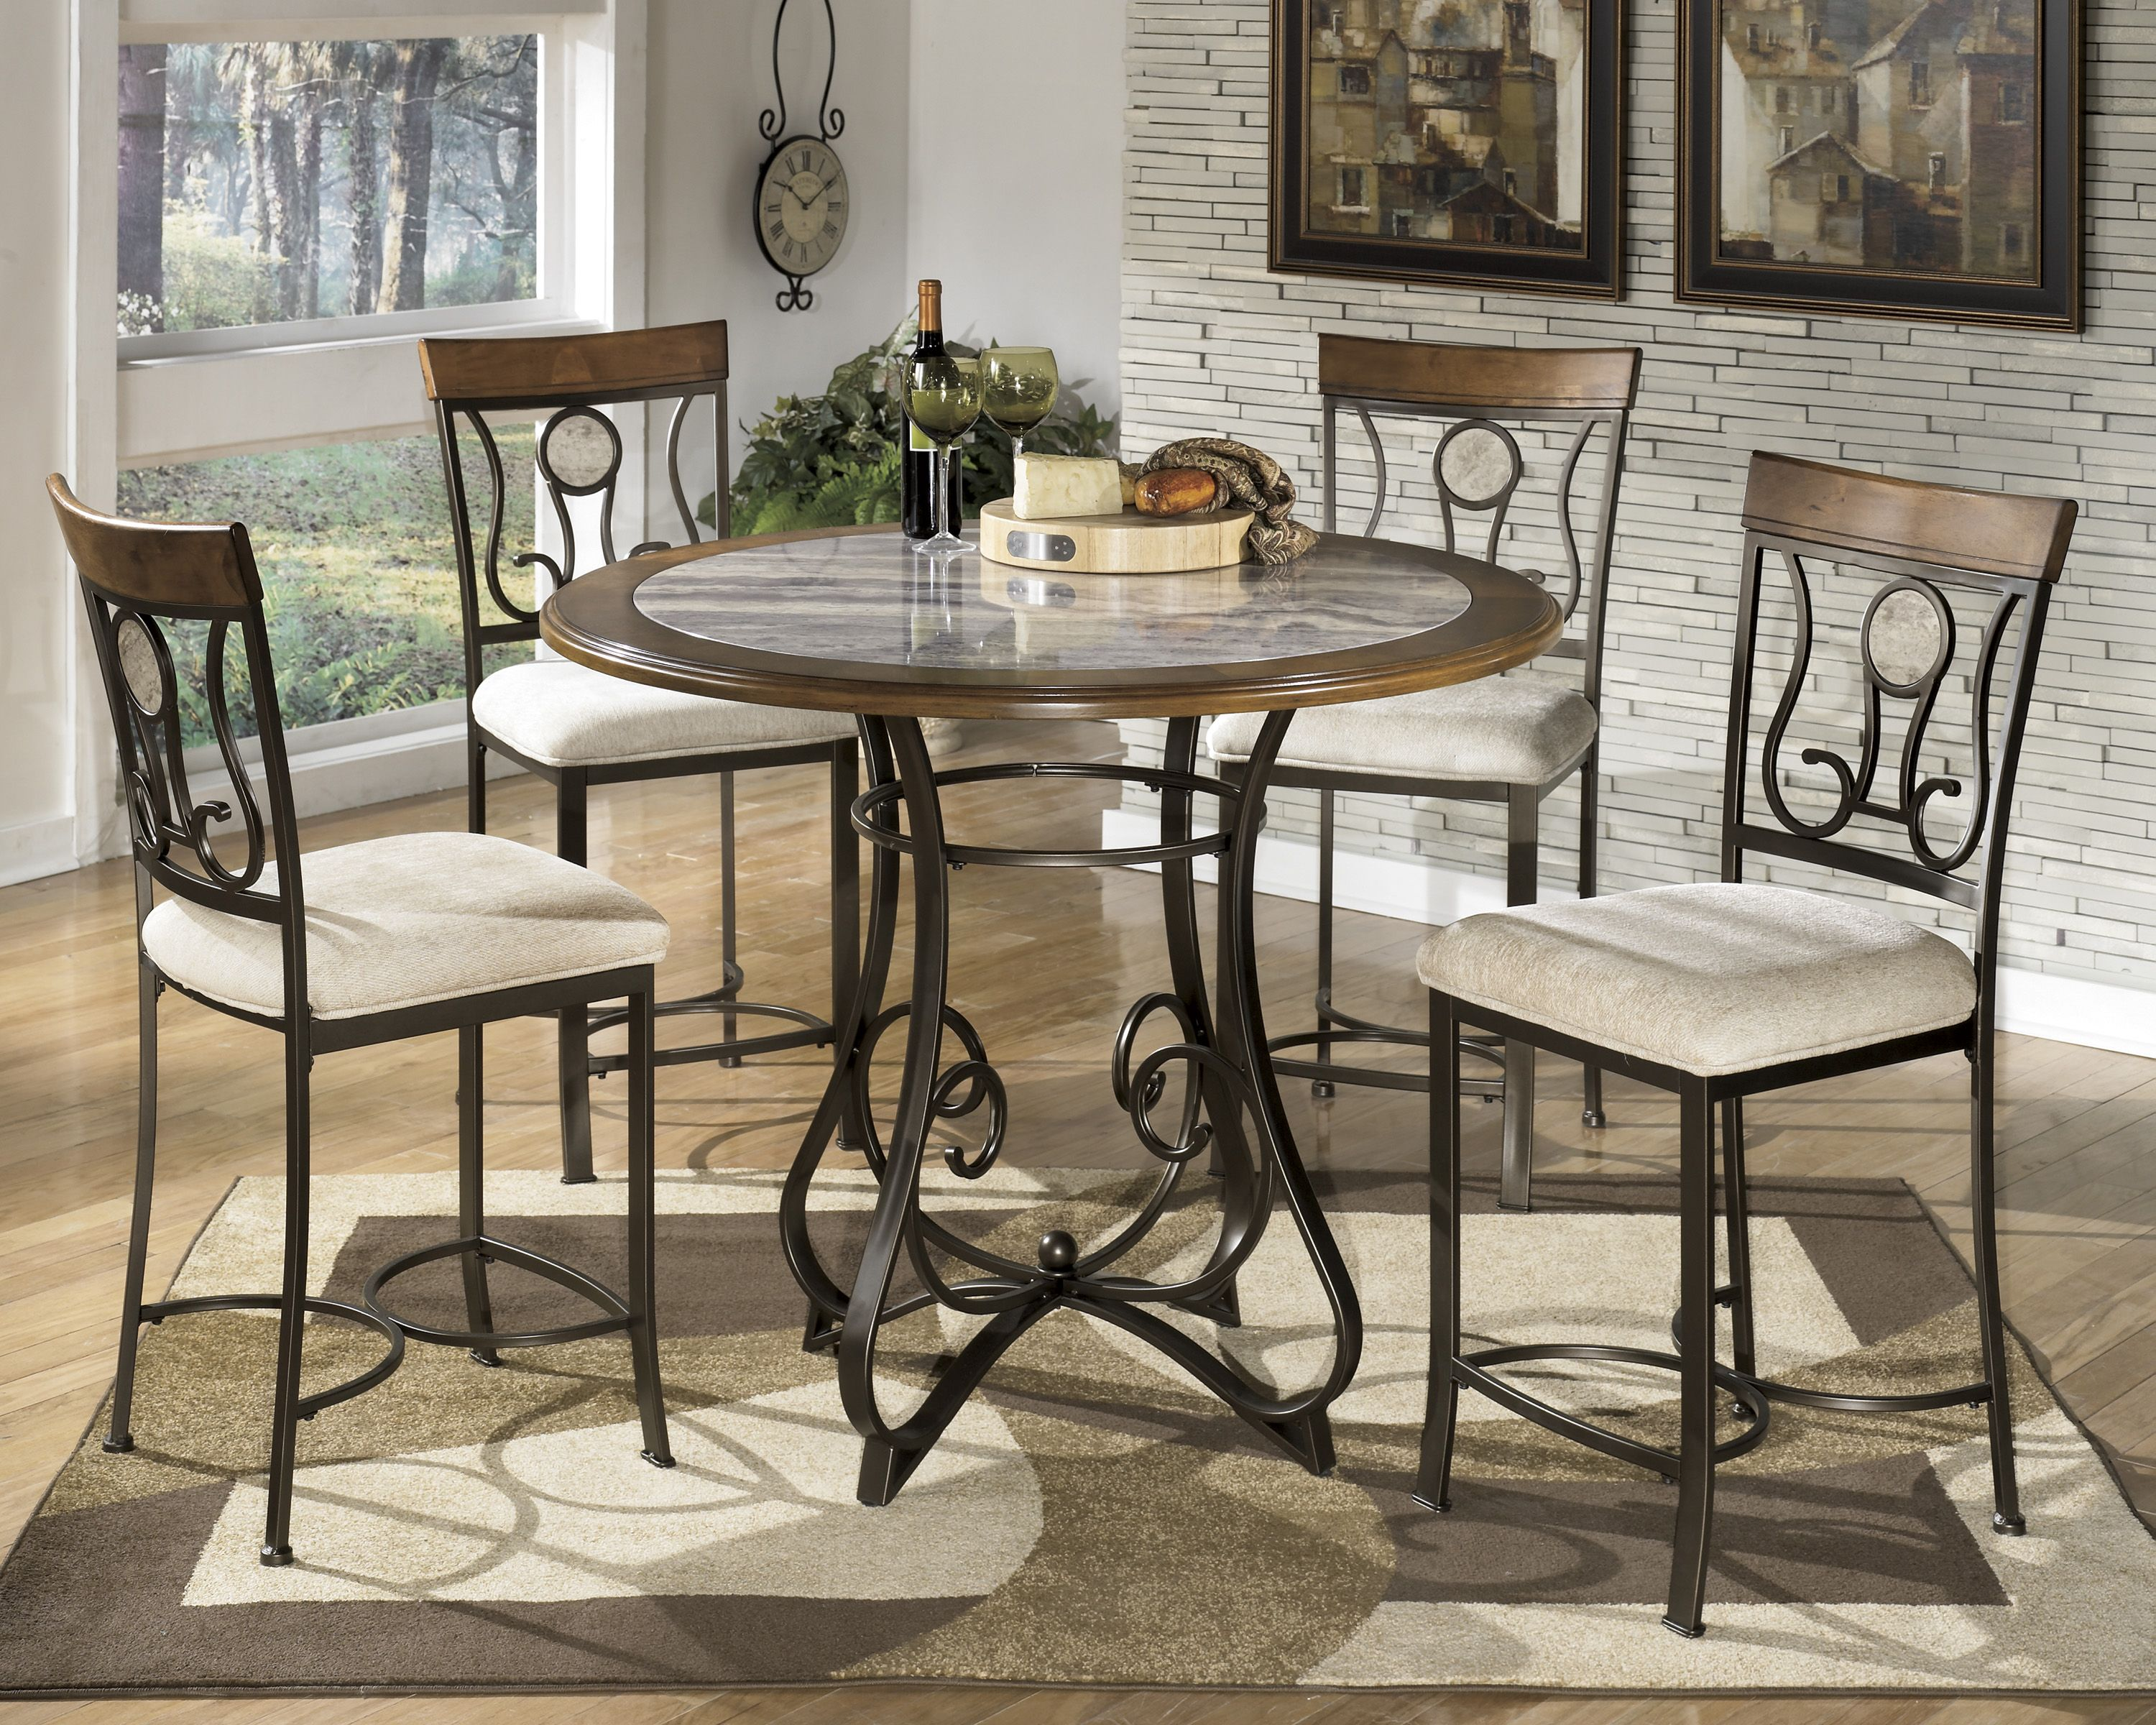 The 39 hopstand 39 44 round counter height table 4 stools for Tall dining tables small spaces